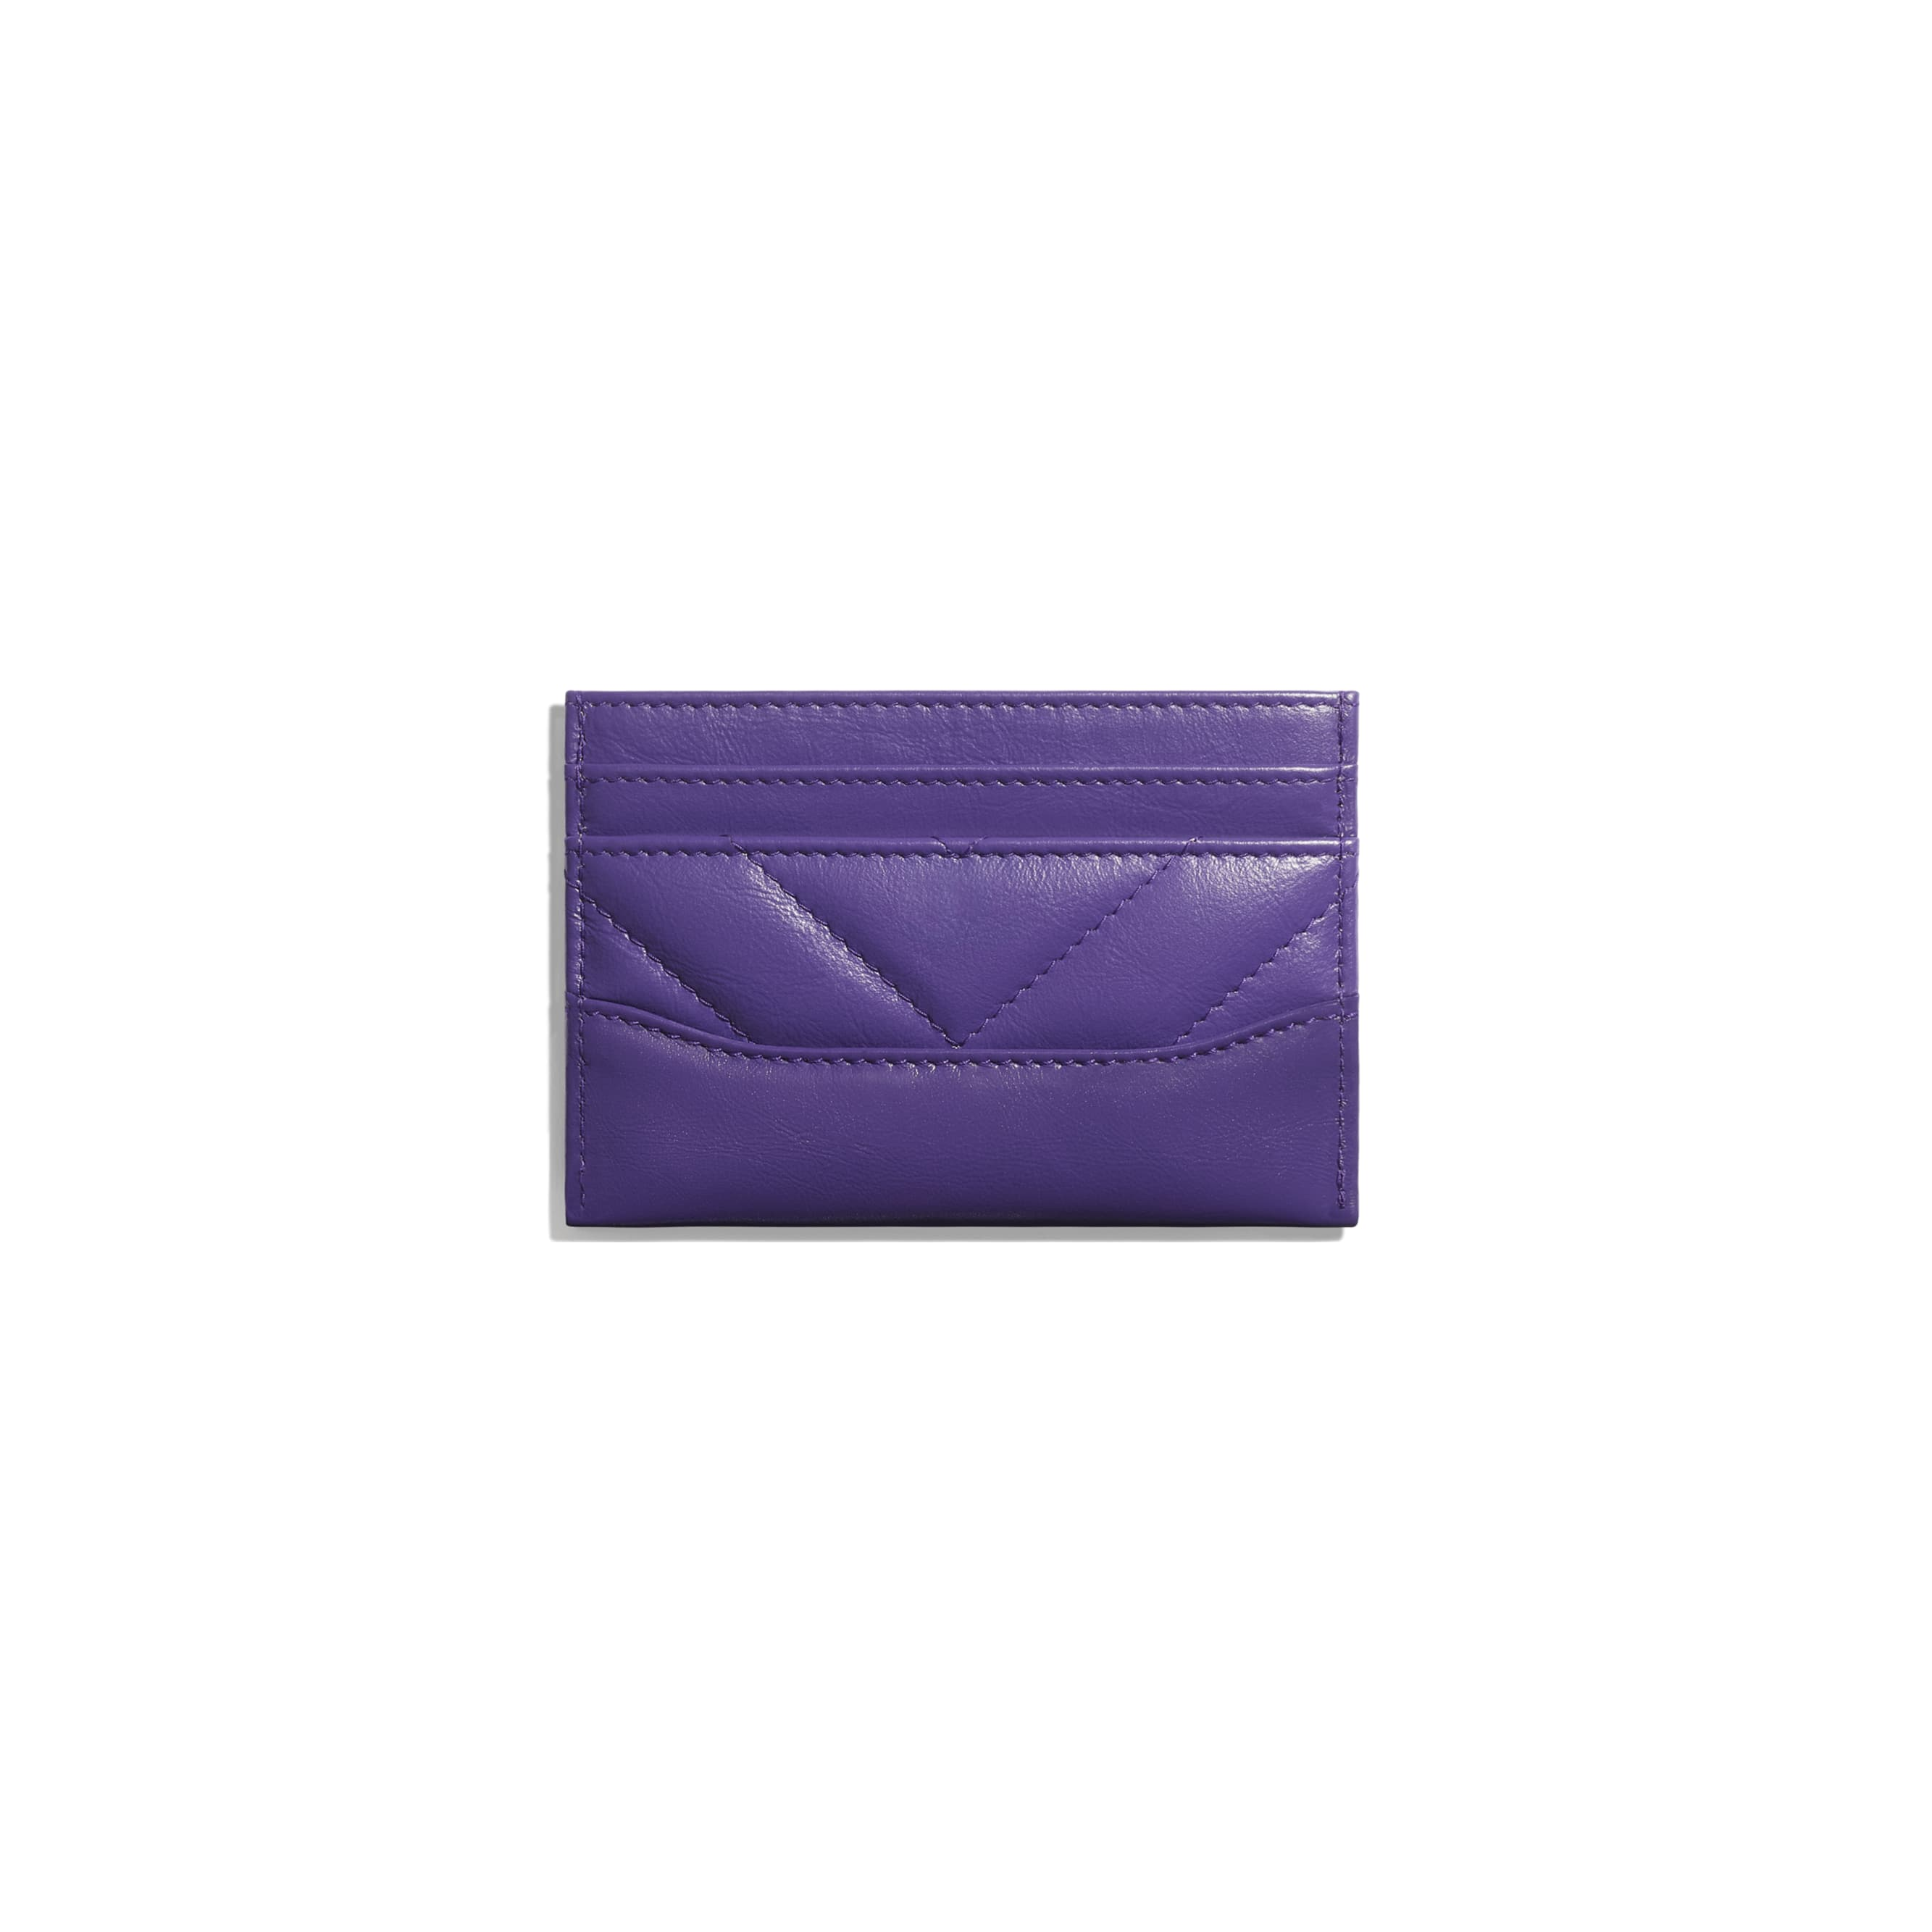 Card Holder - Purple - Aged Calfskin, Smooth Calfskin, Gold-Tone, Silver-Tone & Ruthenium-Finish Metal - CHANEL - Alternative view - see standard sized version